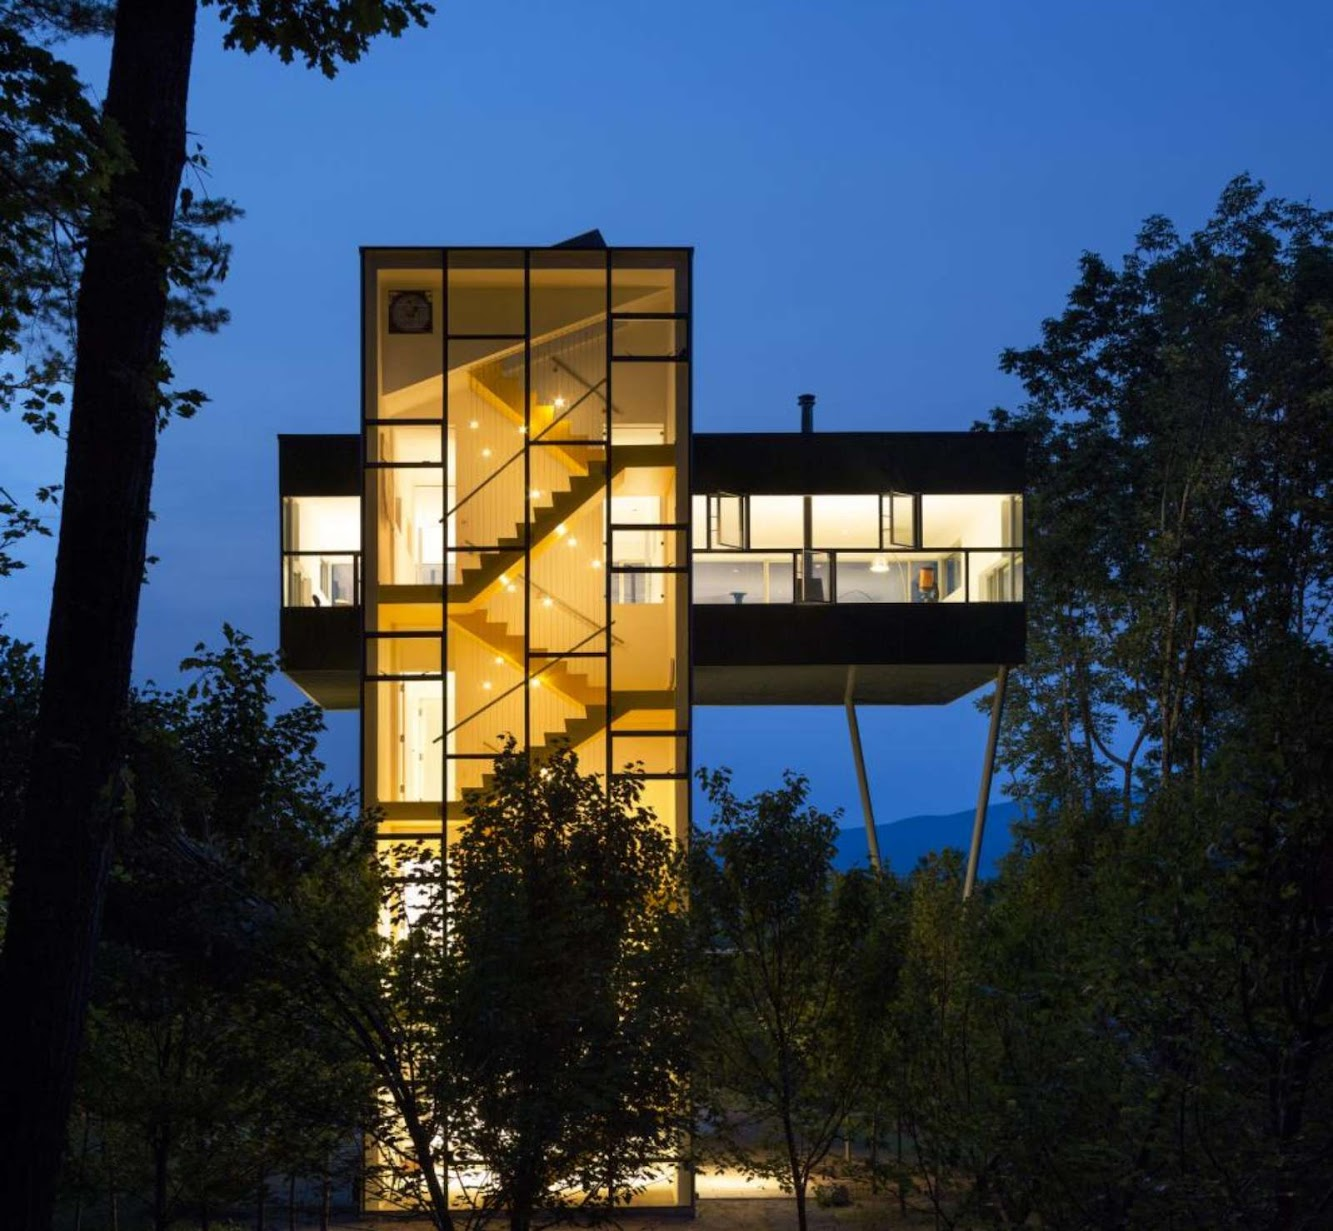 04-Tower-House-by-Gluck+